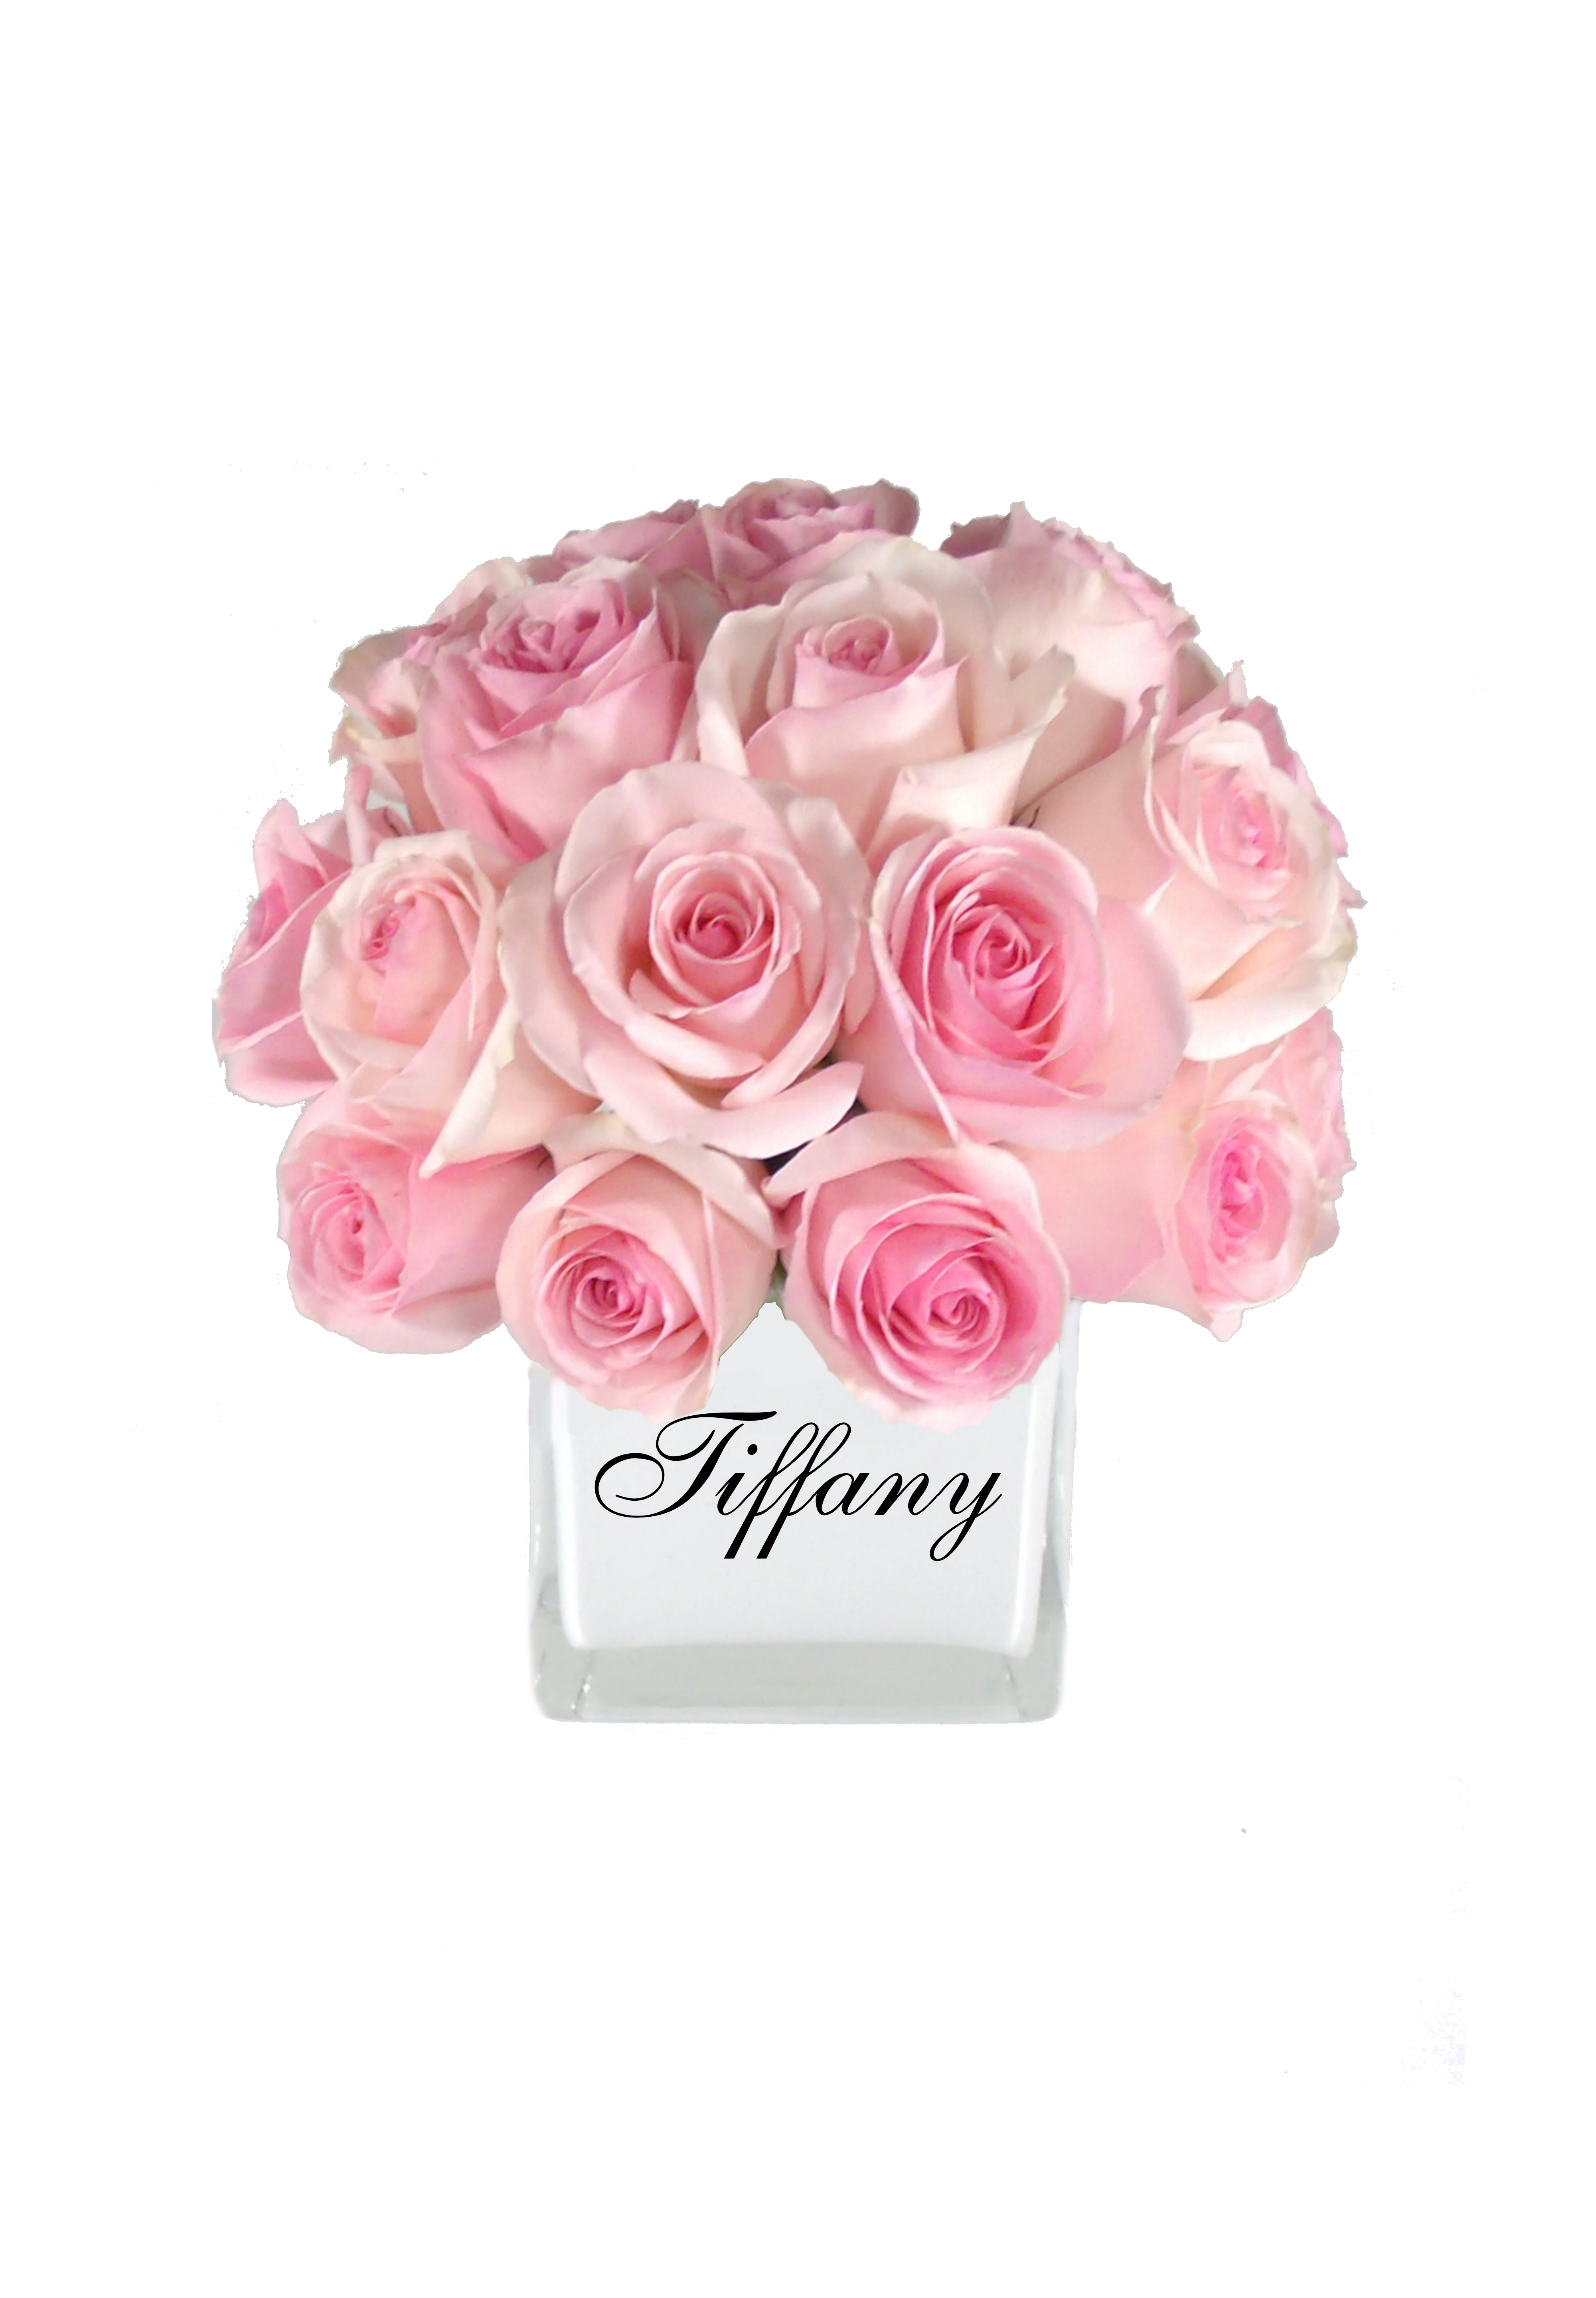 Monogrammed Personalized Vase With Light Pink Roses Flower